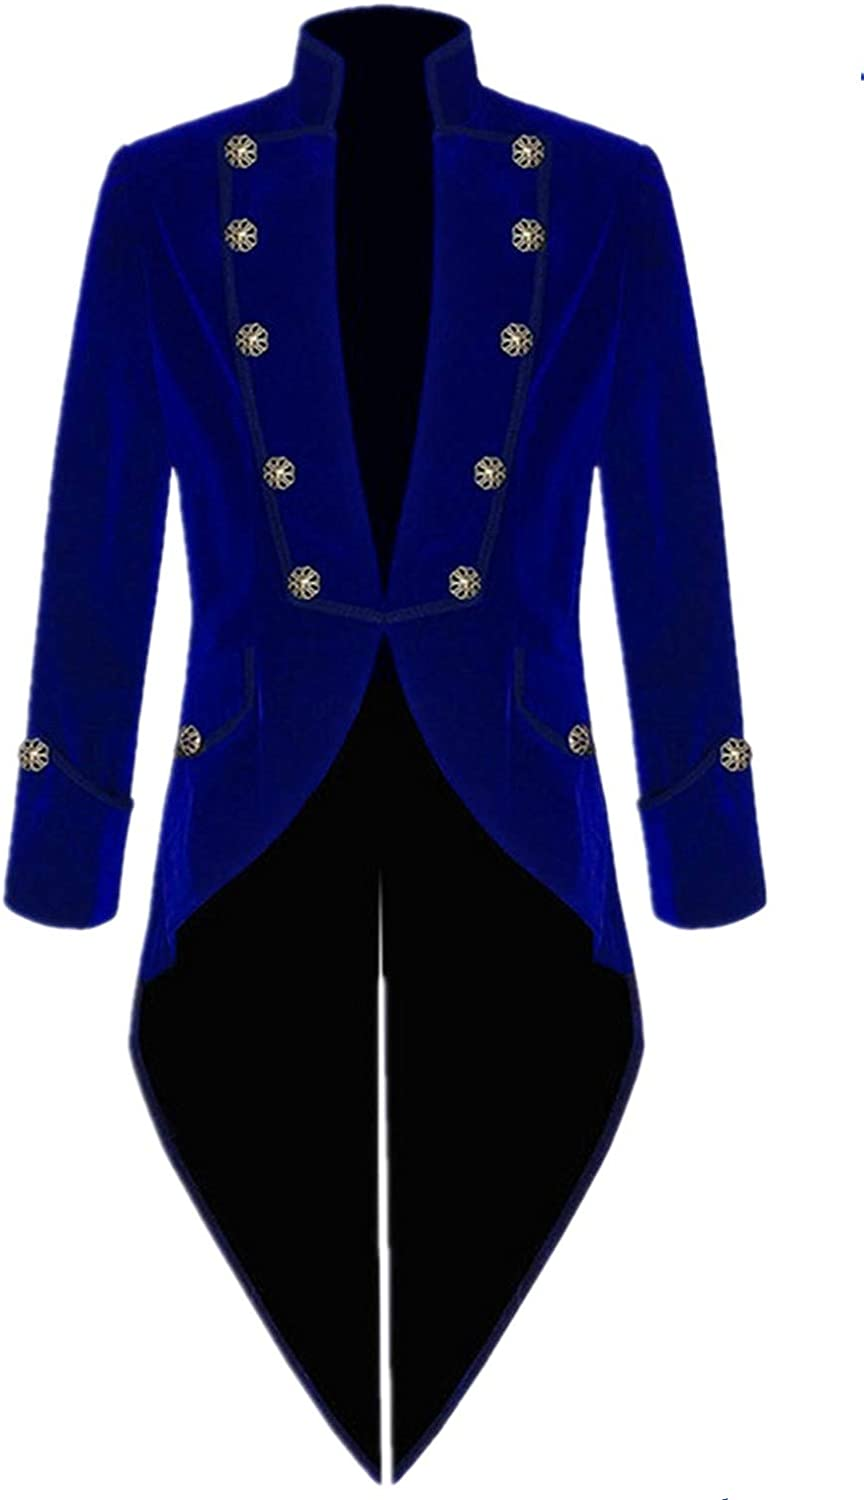 Suxiaoxi Blazer for Men Big and Tall Stylish Velvet Long Steampunk Jackets Men's Formal Gothic Victorian